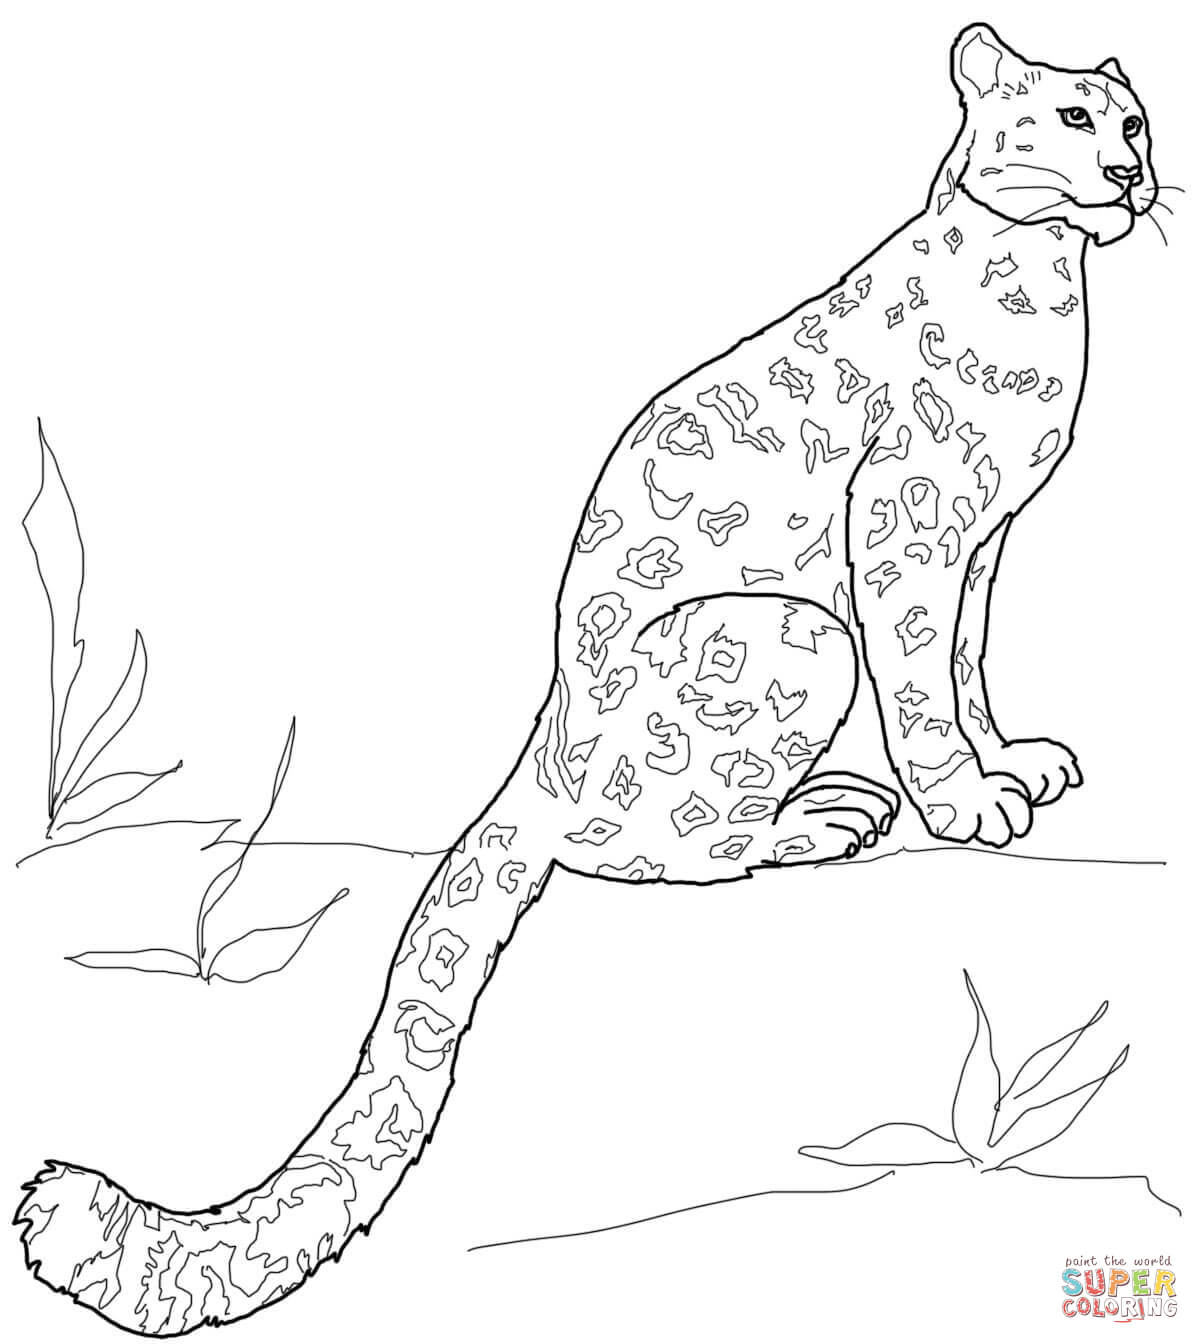 Drawn snow leopard tree drawing Leopard Sitting pages Coloring Leopards